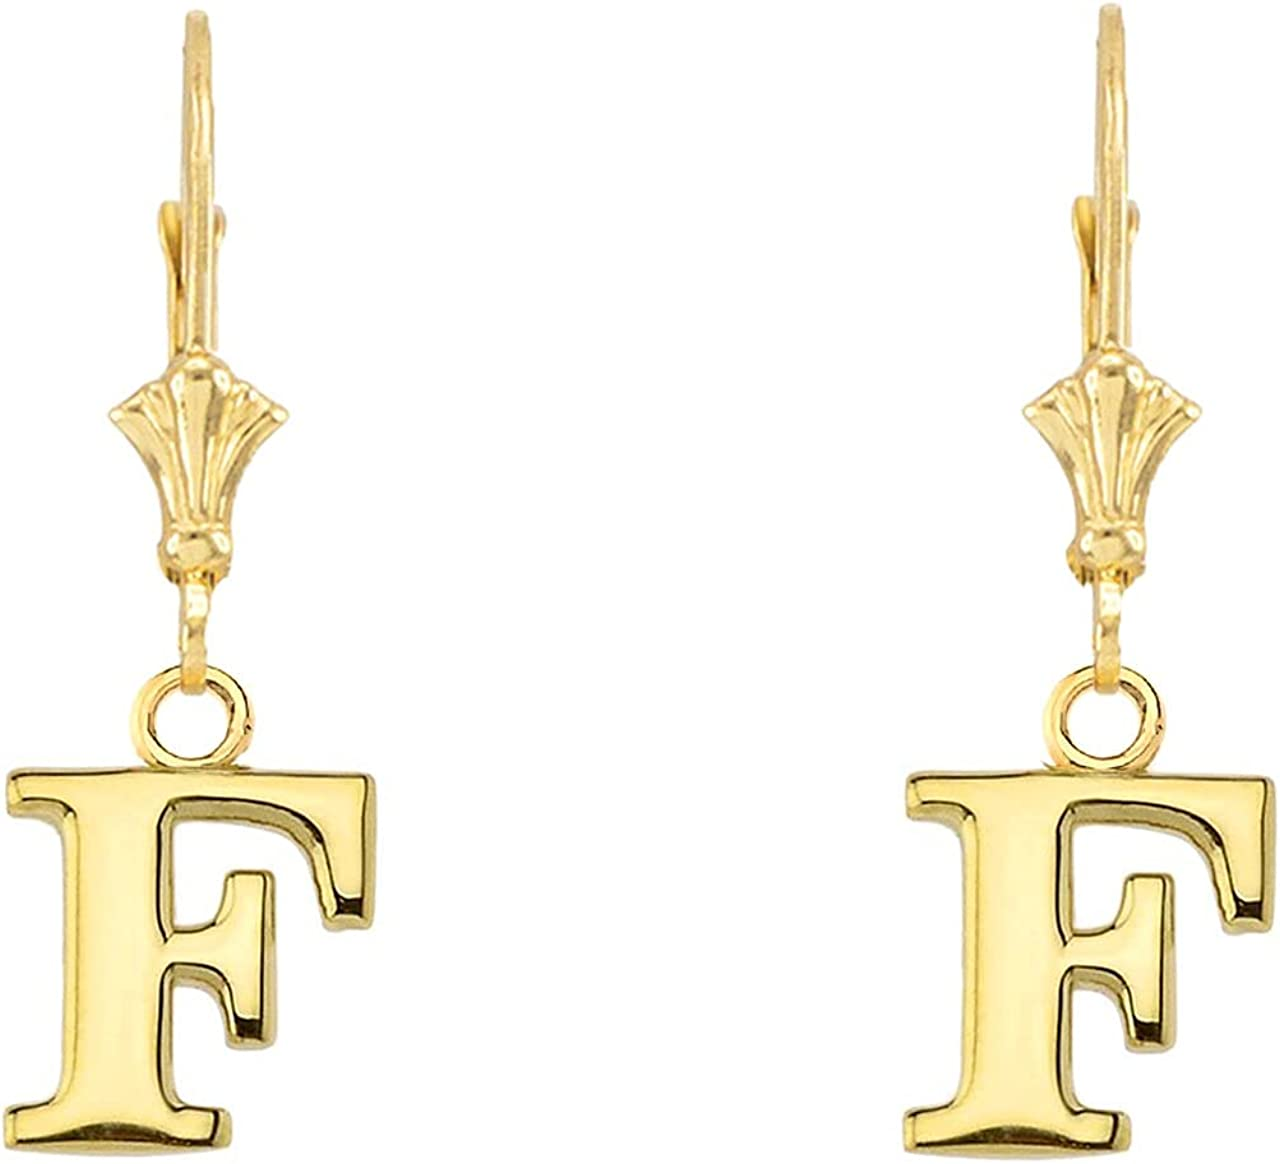 INITIAL EARRINGS Omaha Mall IN 14K YELLOW Dealing full price reduction F GOLD Letters: -